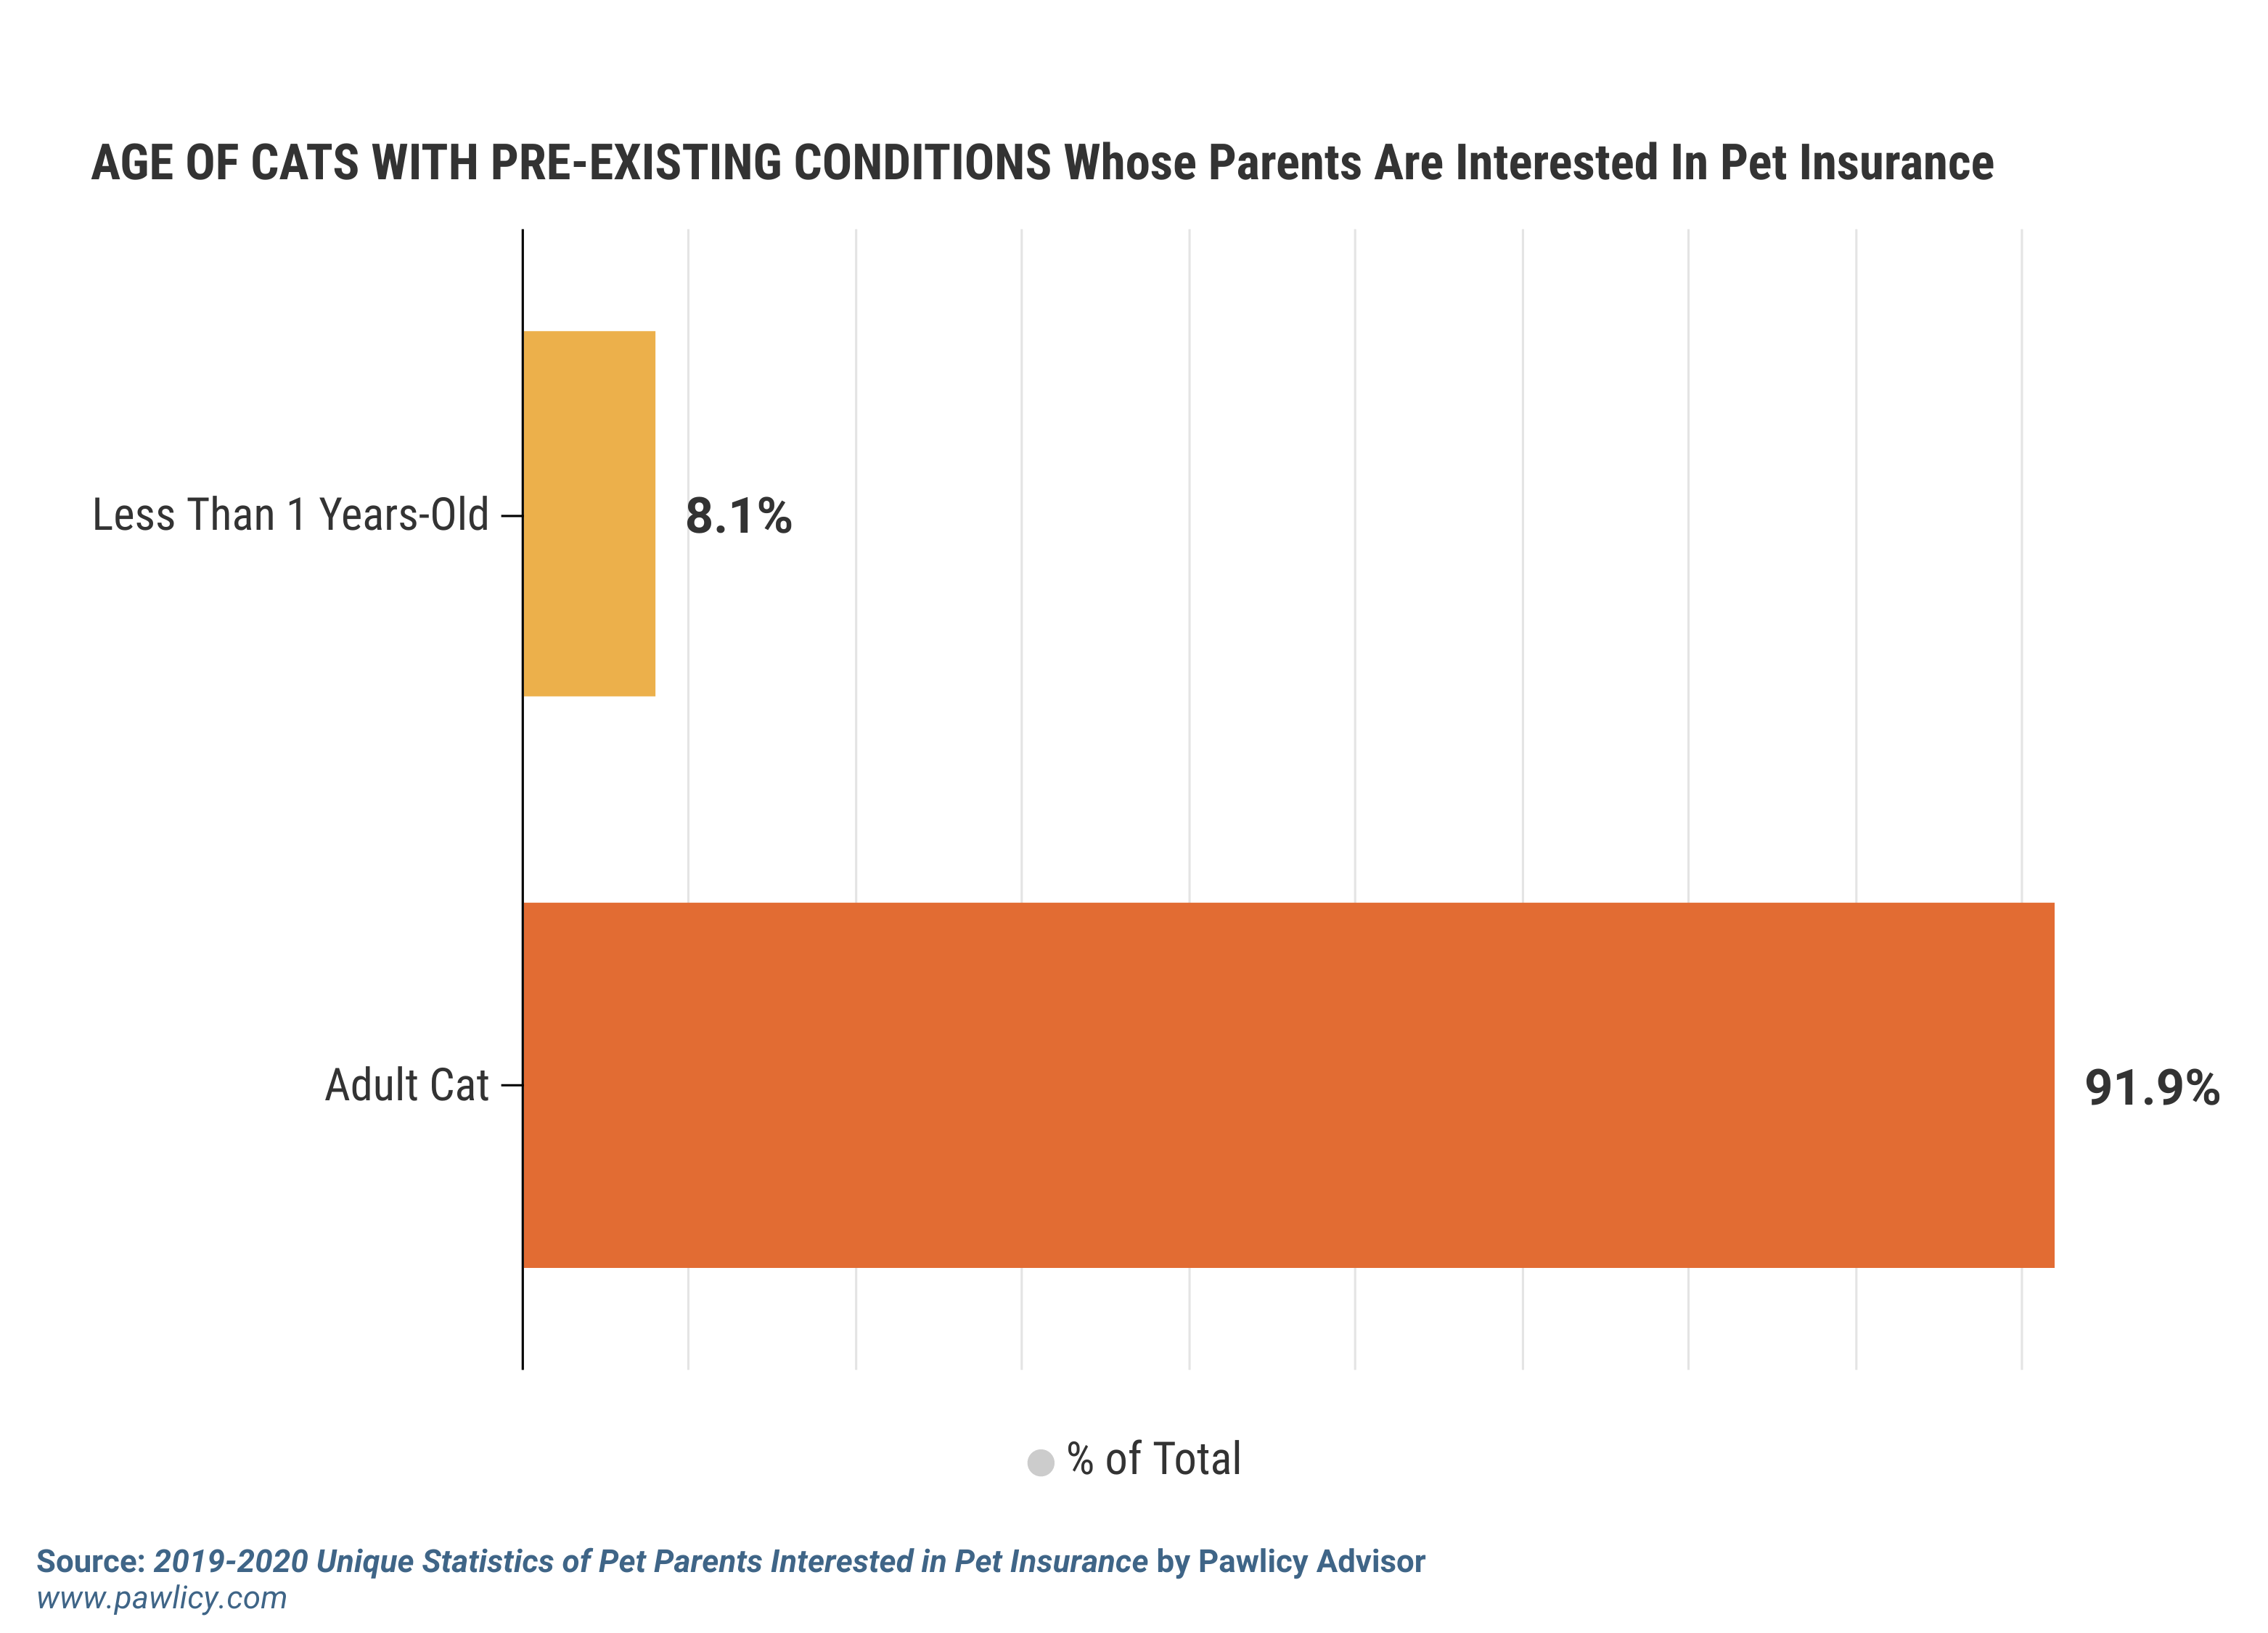 age of cats with pre-existing conditions whose parents are interested in pet insurance